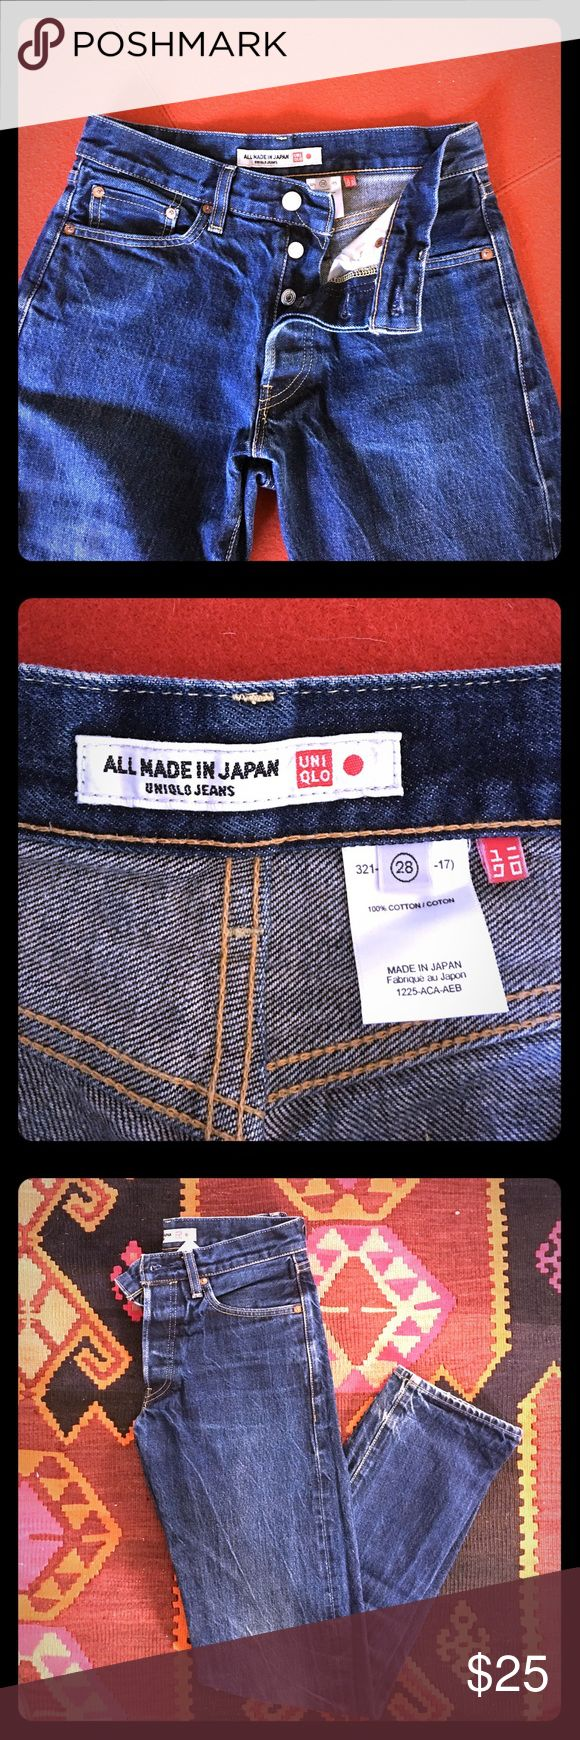 Uniqlo Jeans Uniqlo Jeans. High quality denim made in Japan. Size 28 Jeans Boyfriend